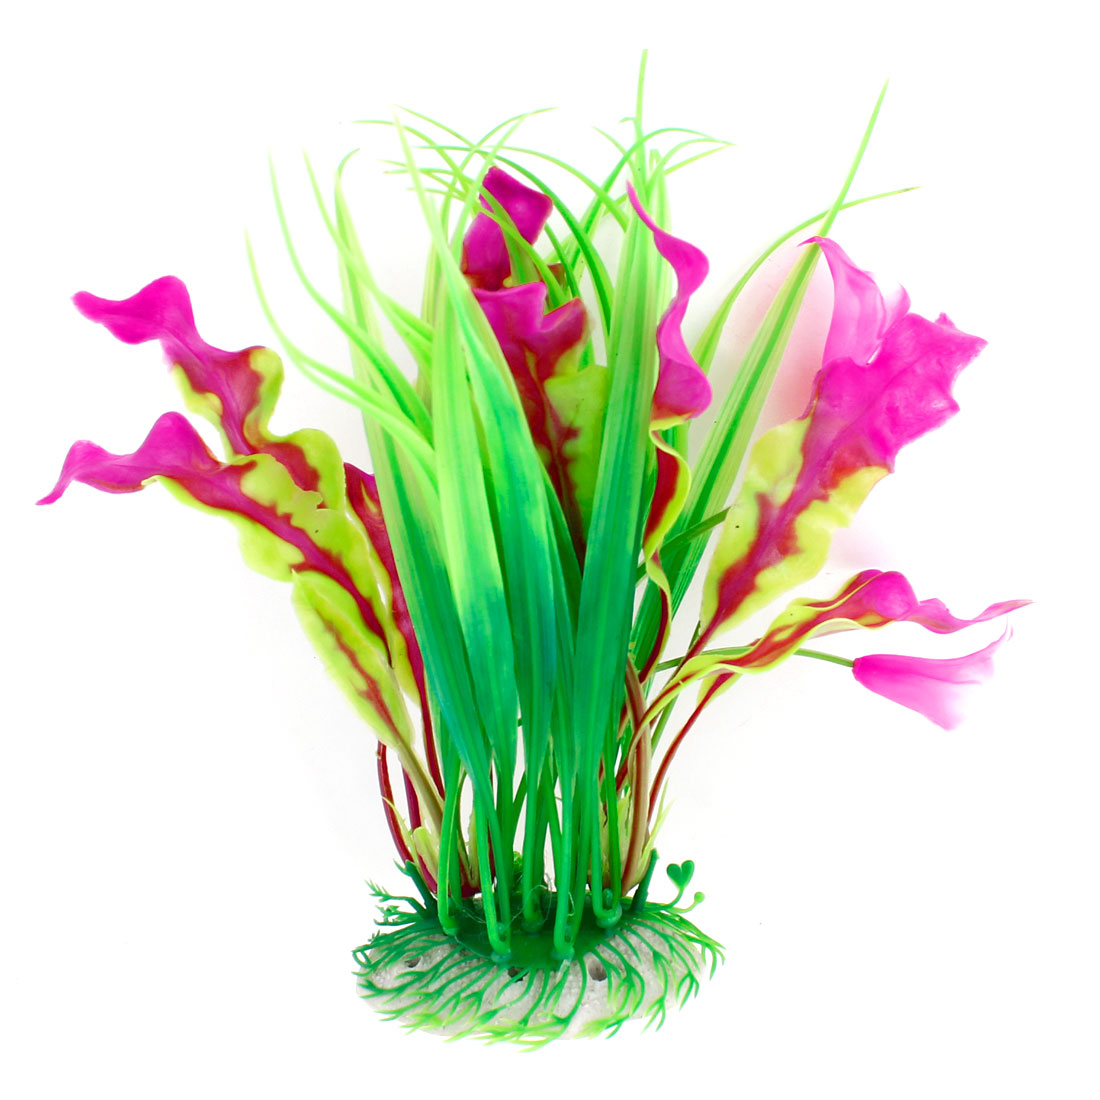 Green Purple Plastic Flowers Decoration Underwater Grasses for Fish Tank